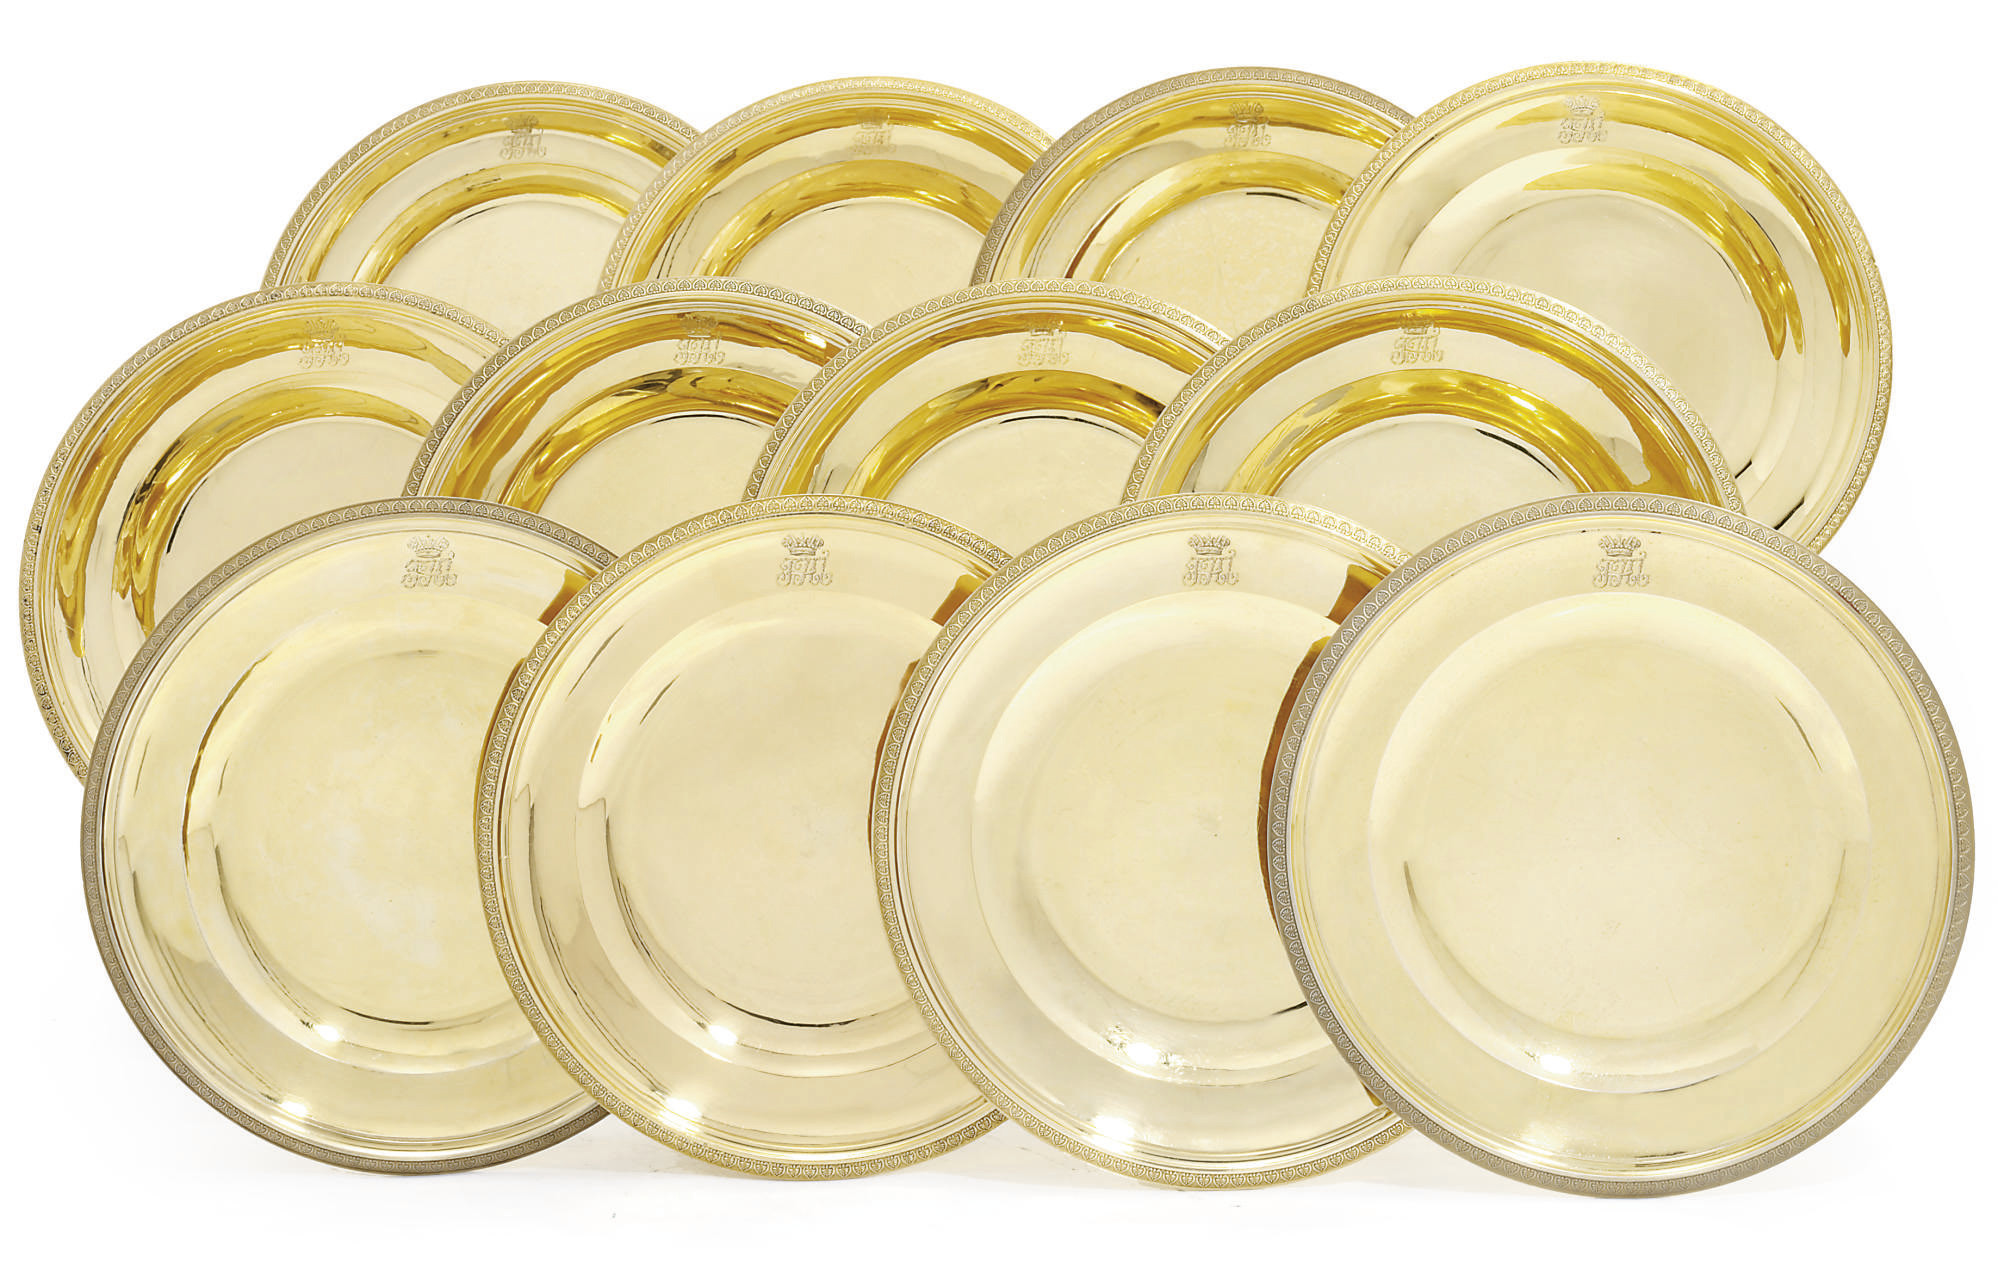 A SET OF TWELVE FRENCH EMPIRE SILVER-GILT DESSERT-PLATES FROM THE GRAND DUKE NICHOLAS PAVLOVICH SERVICE